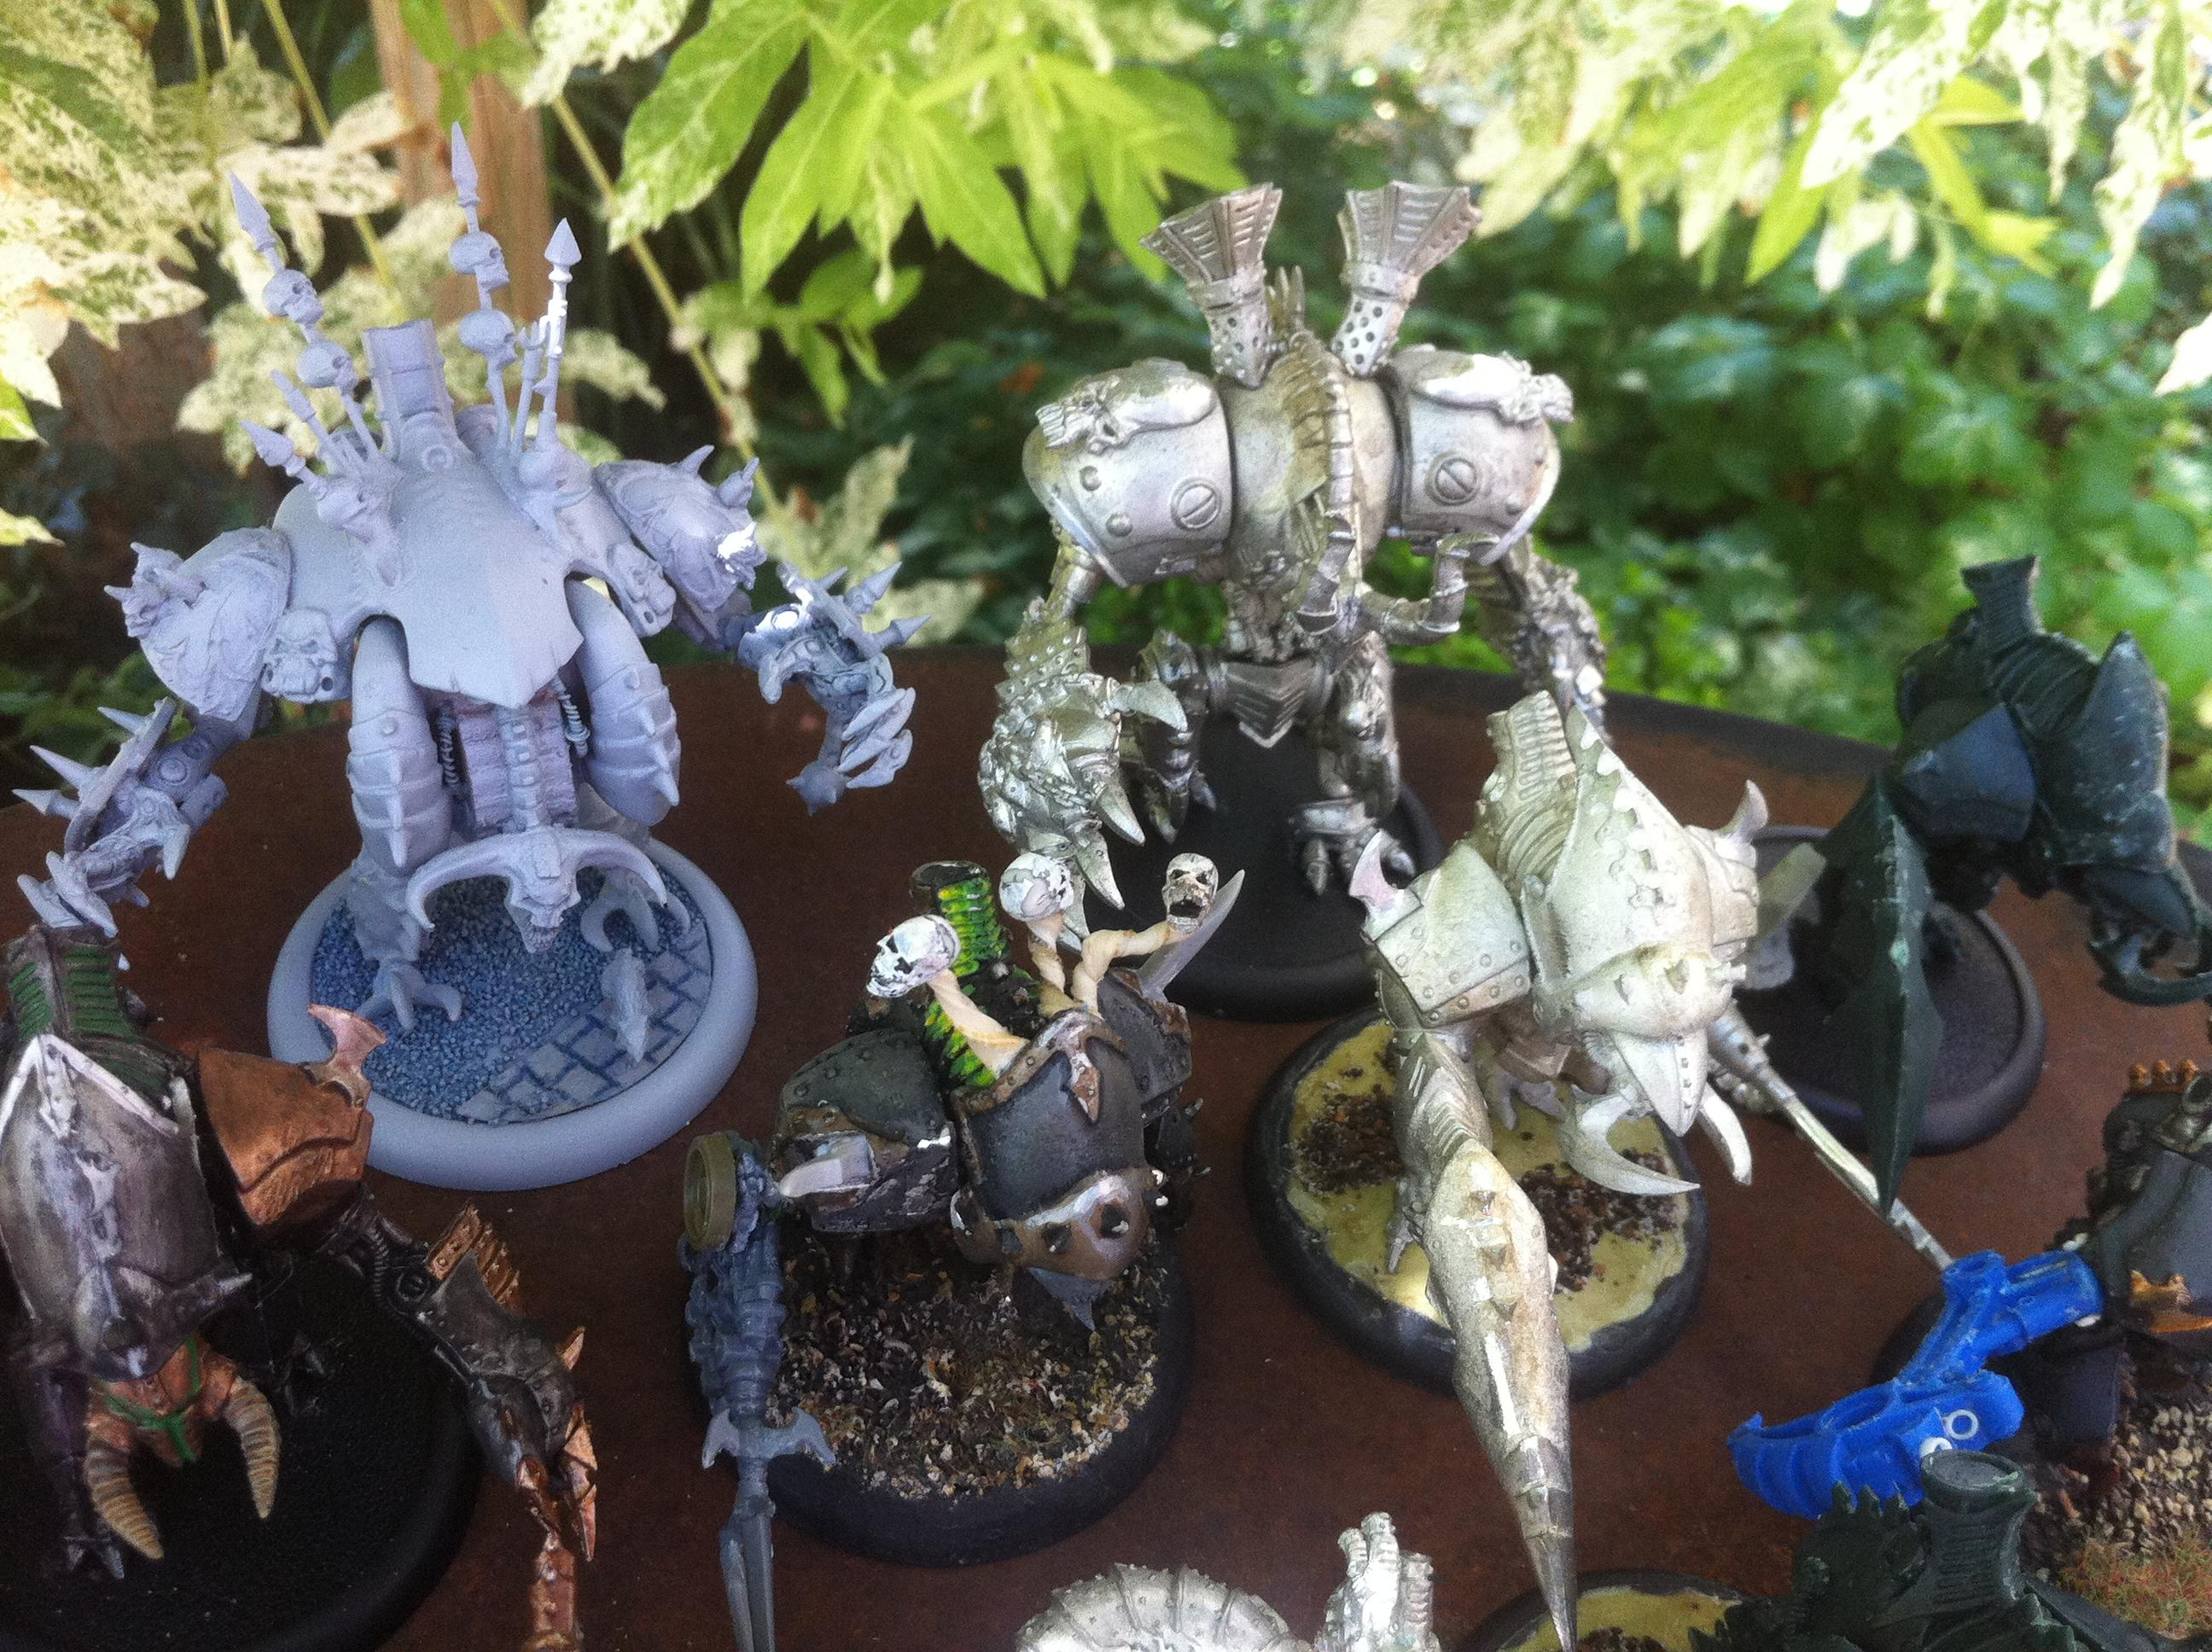 Cryx, Cygnar, Dead, Khorne, Lichlord, Mechs, Monster, Protectorate Of Menoth, Protectoriat, Scratch Build, Warcaster, Warjack, Warmachine